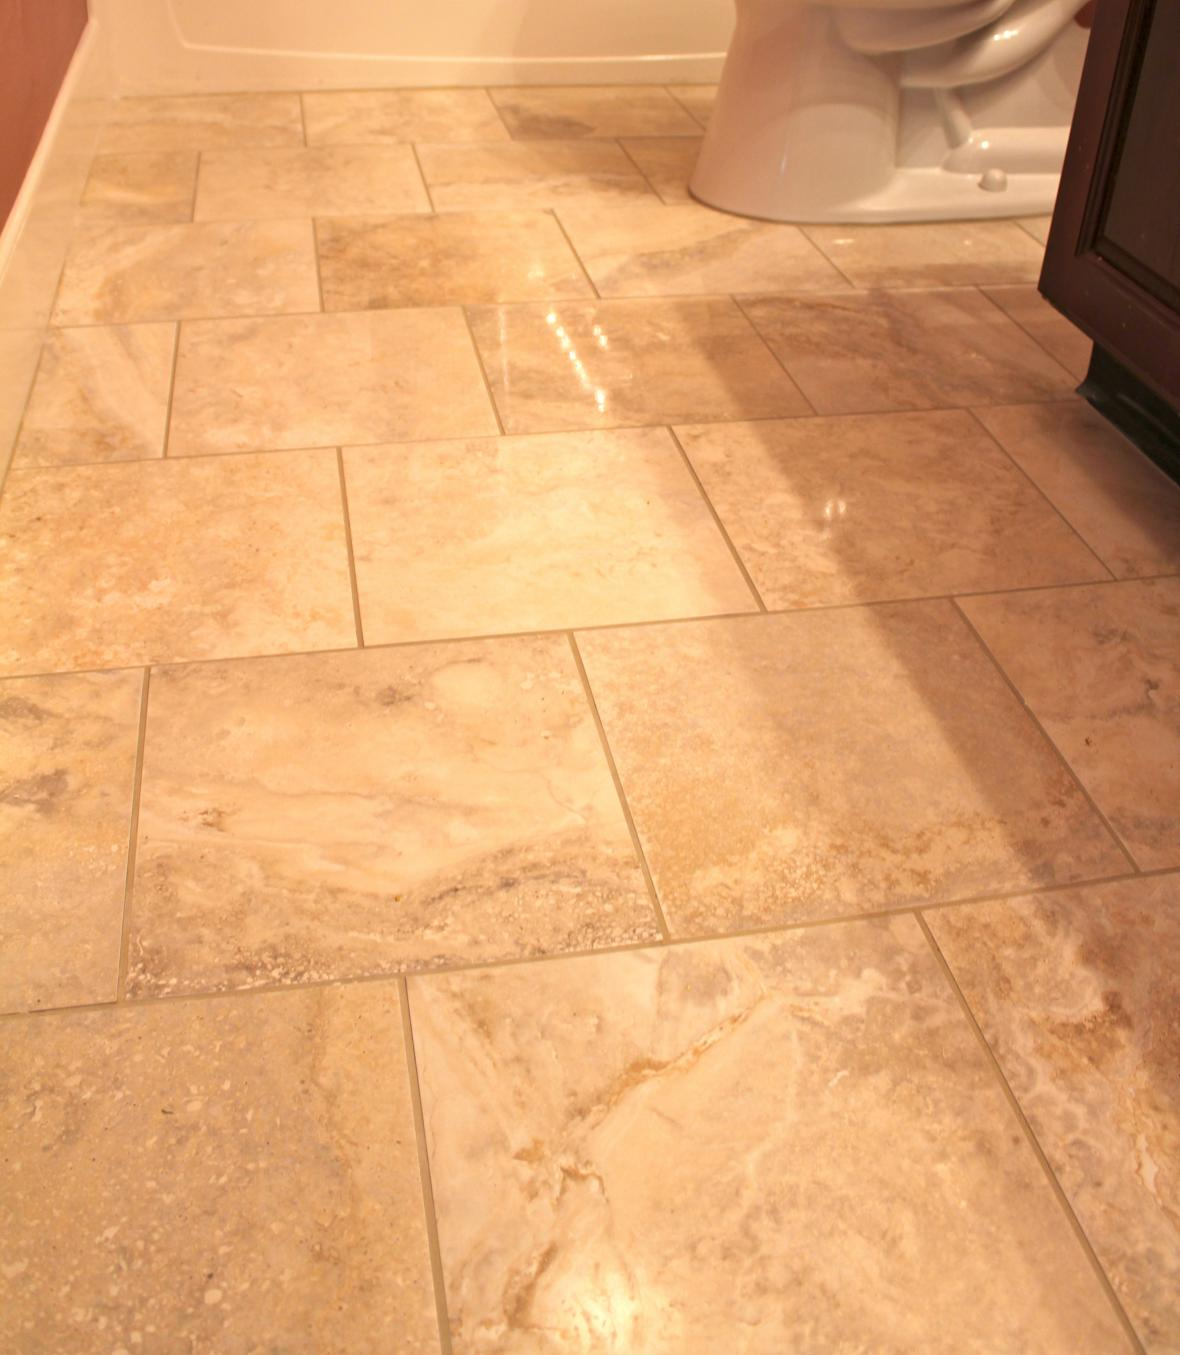 Bathroom Floors | New Jersey Custom Tile